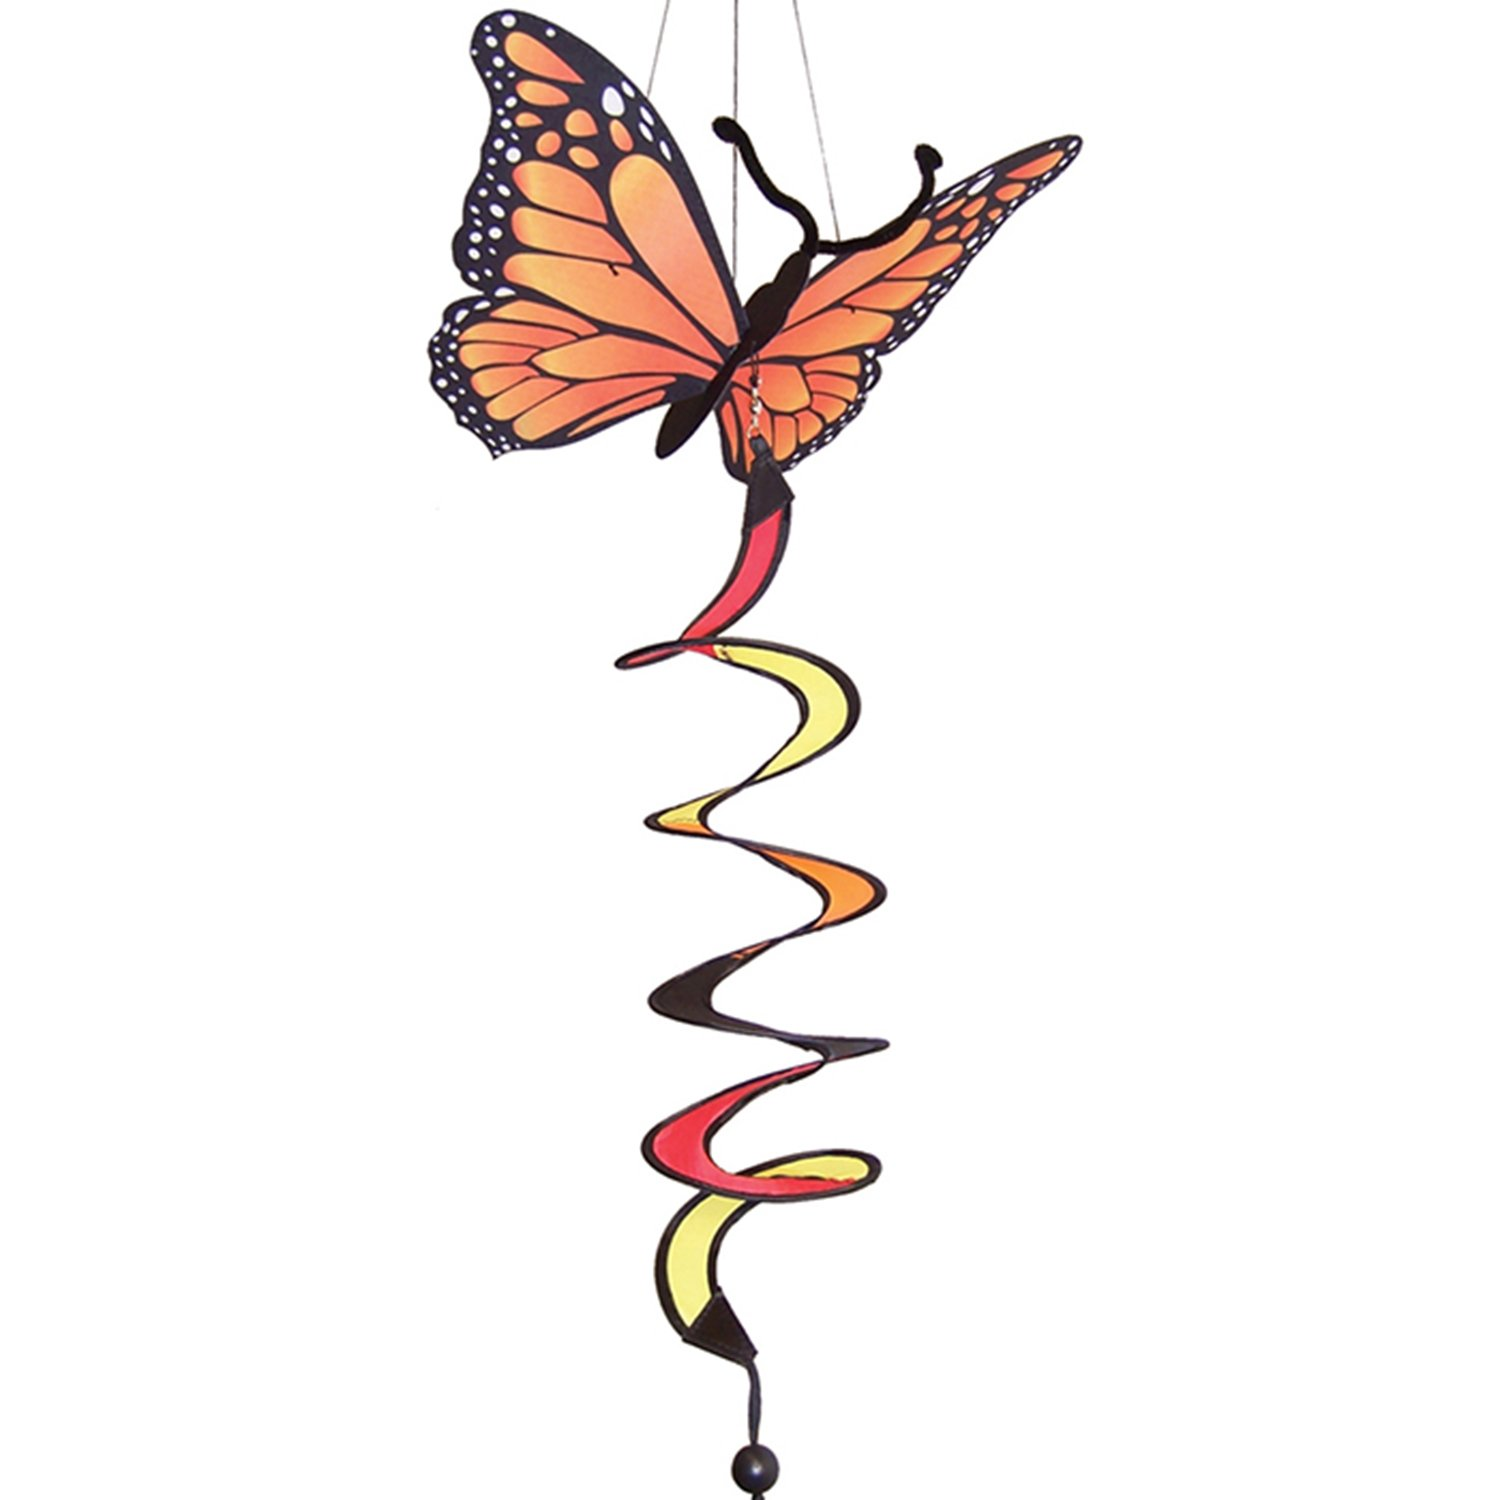 Mozlly Multipack - In the Breeze Orange Monarch Butterfly Theme 12 x 30 Twister (Pack of 6) by Mozlly